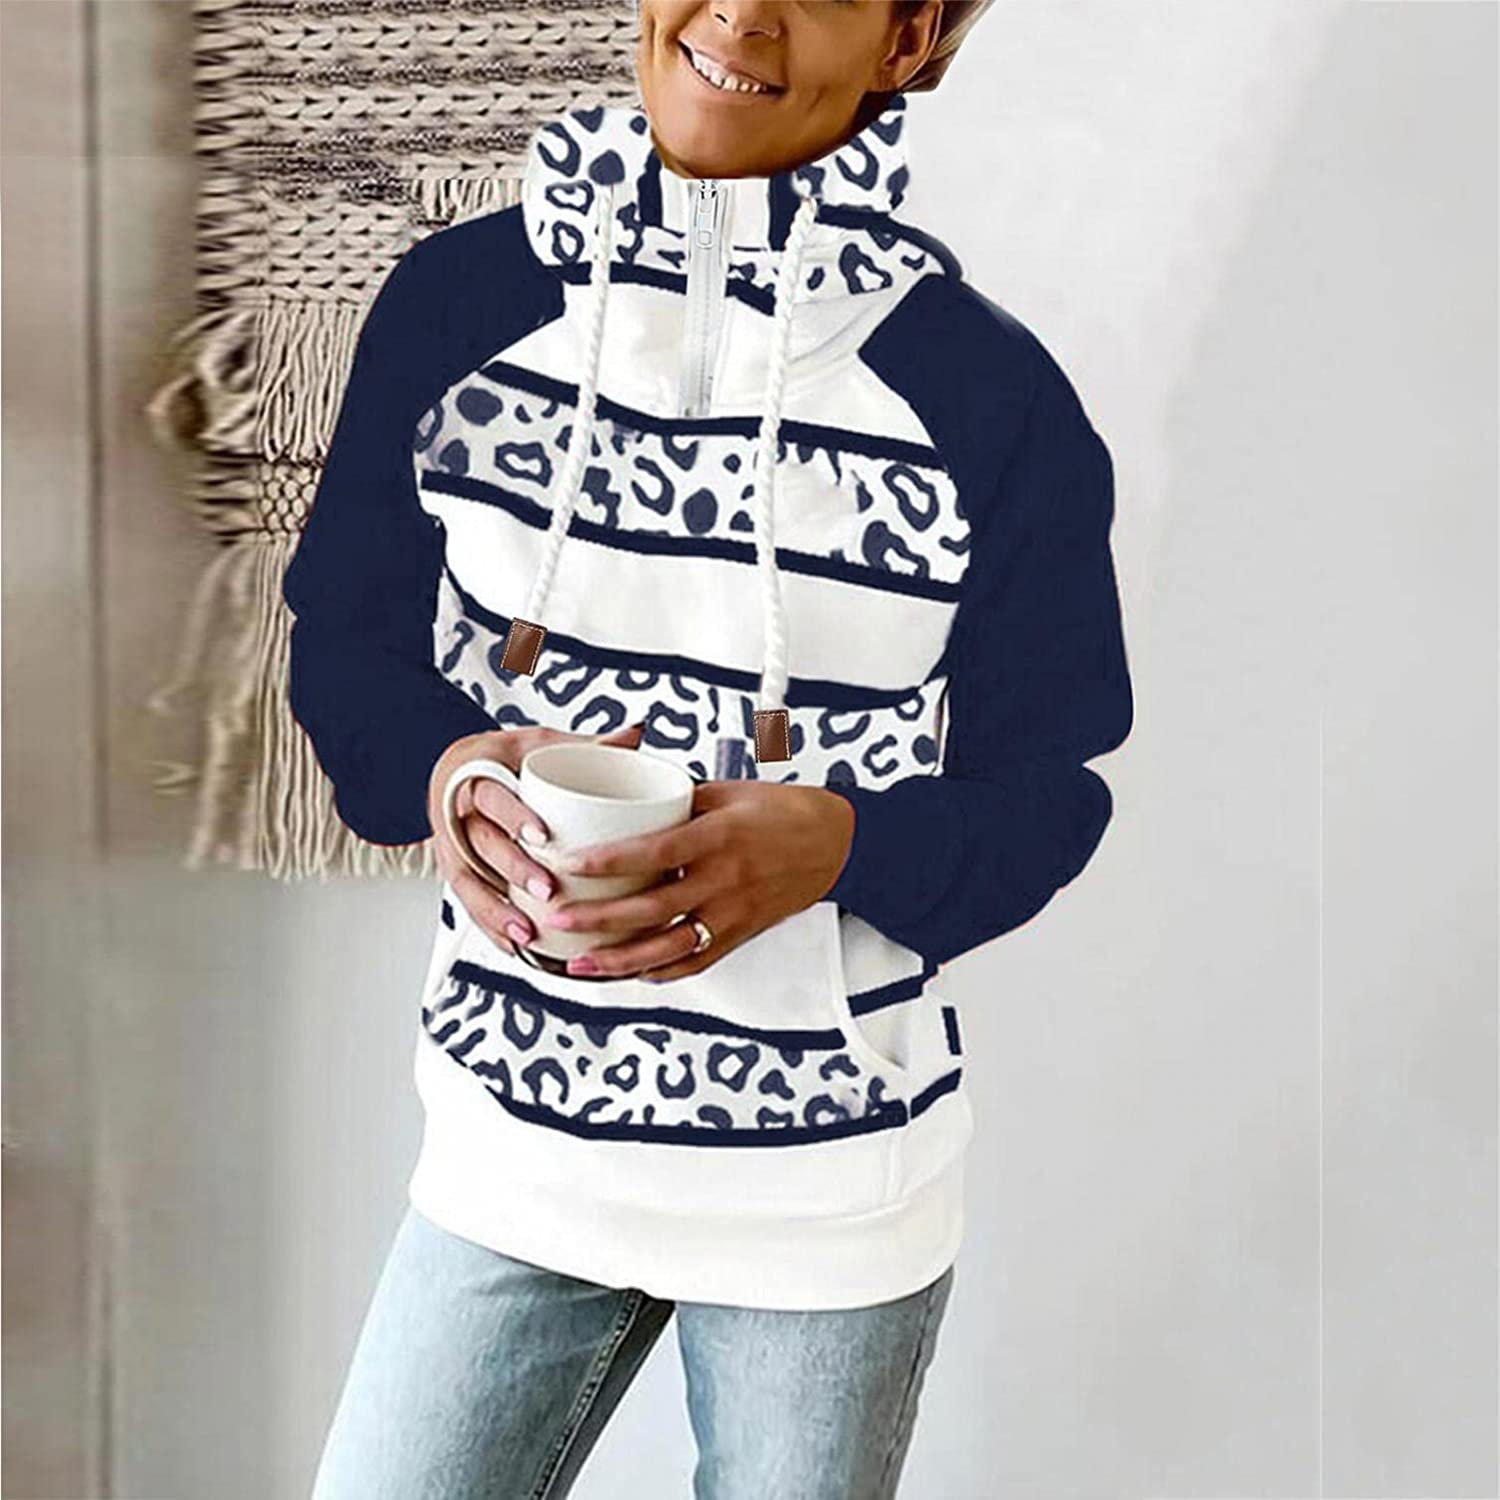 AODONG Hooded Sweatshirts for Women Casual Lightweight 1/4 Zipper Long Sleeve Loose Striped Hoodies Pullover with Pocket